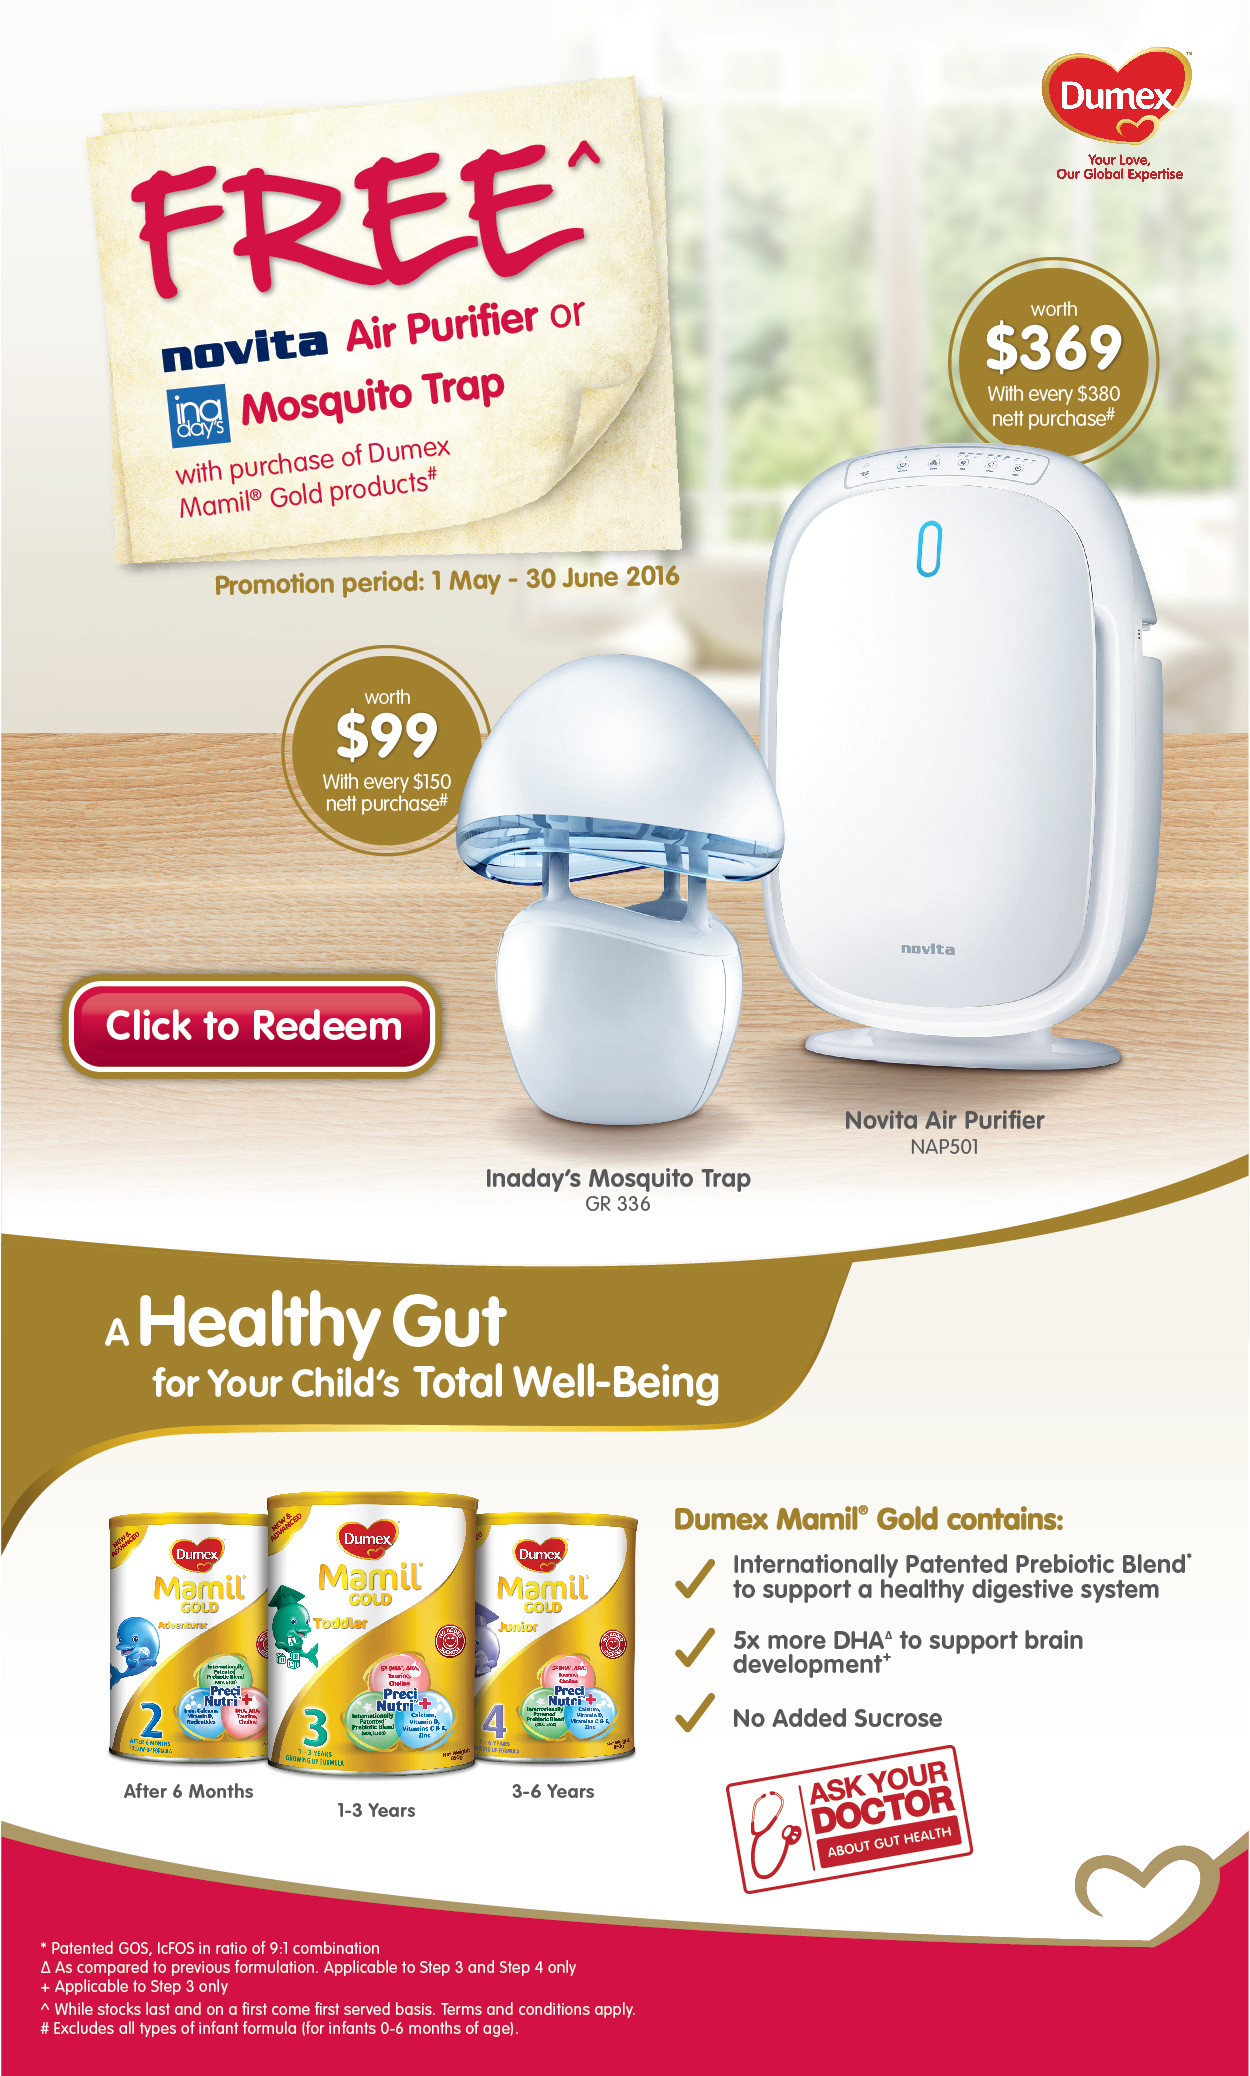 FREE Novita Air Purifier or Inaday's Mosquito Trap